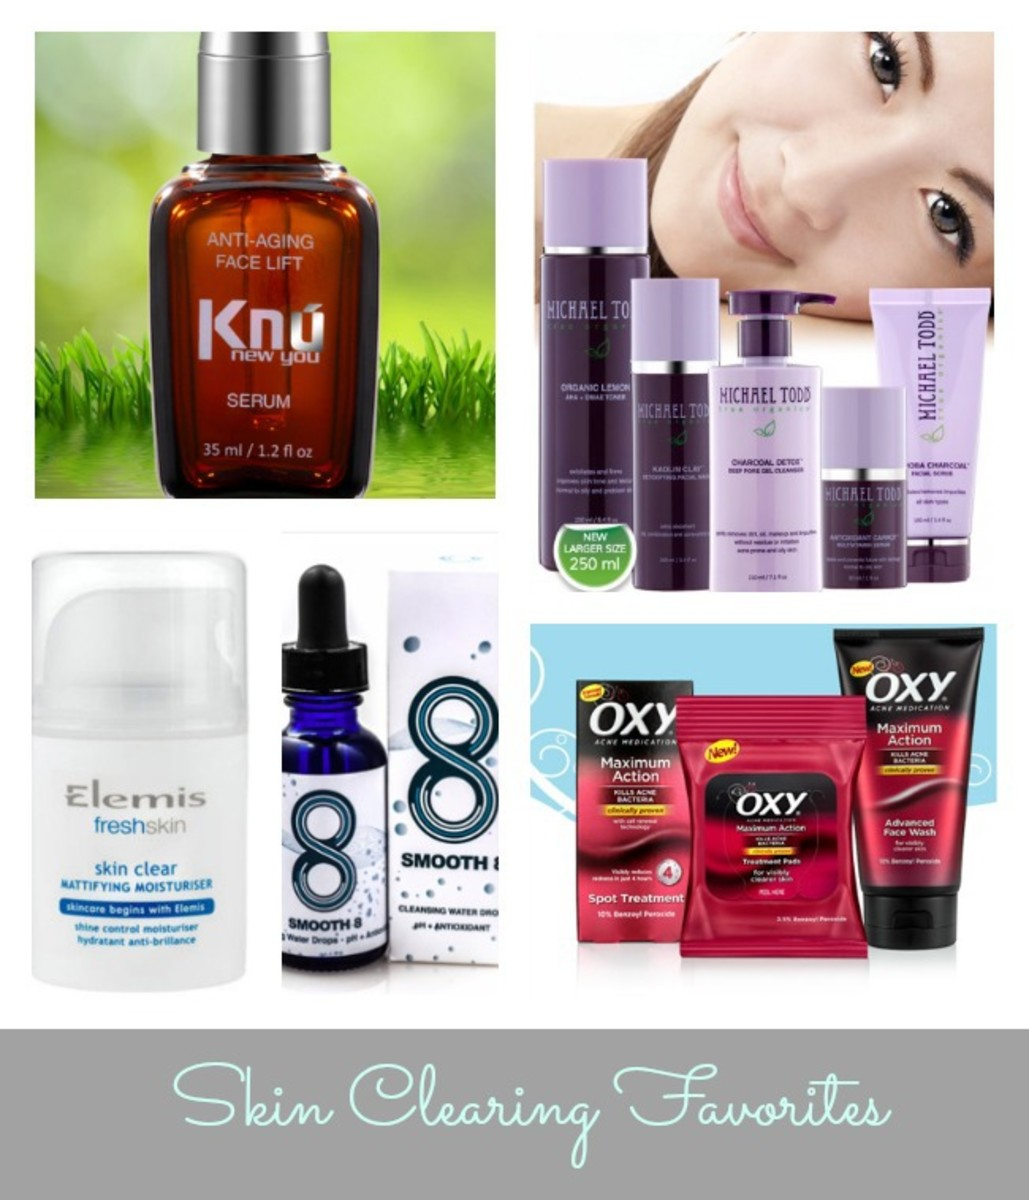 Skin Clearing, Skin Clearing tips, acne